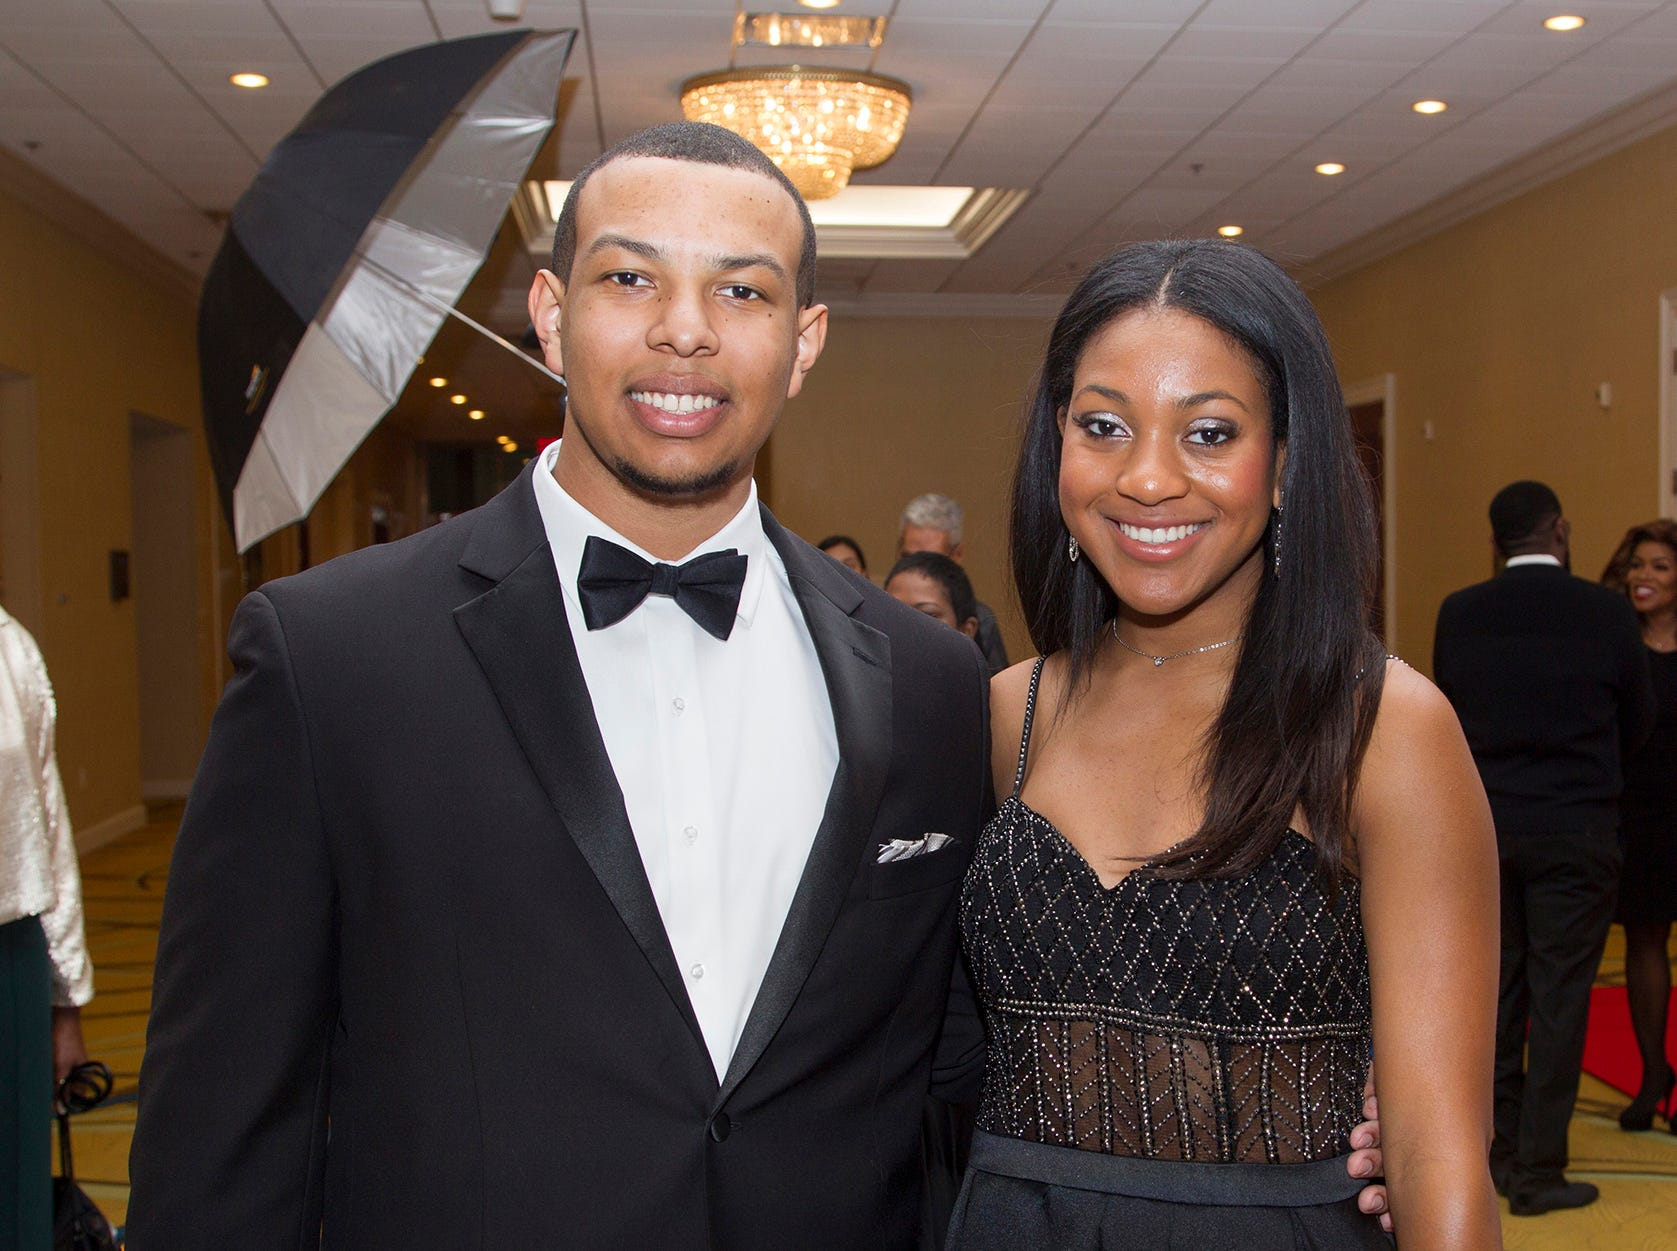 Anthony George, Zoe Washington. Jessie Banks Foundation holds 16th annual Scholarship Awards Gala in Teaneck. 11/09/2018